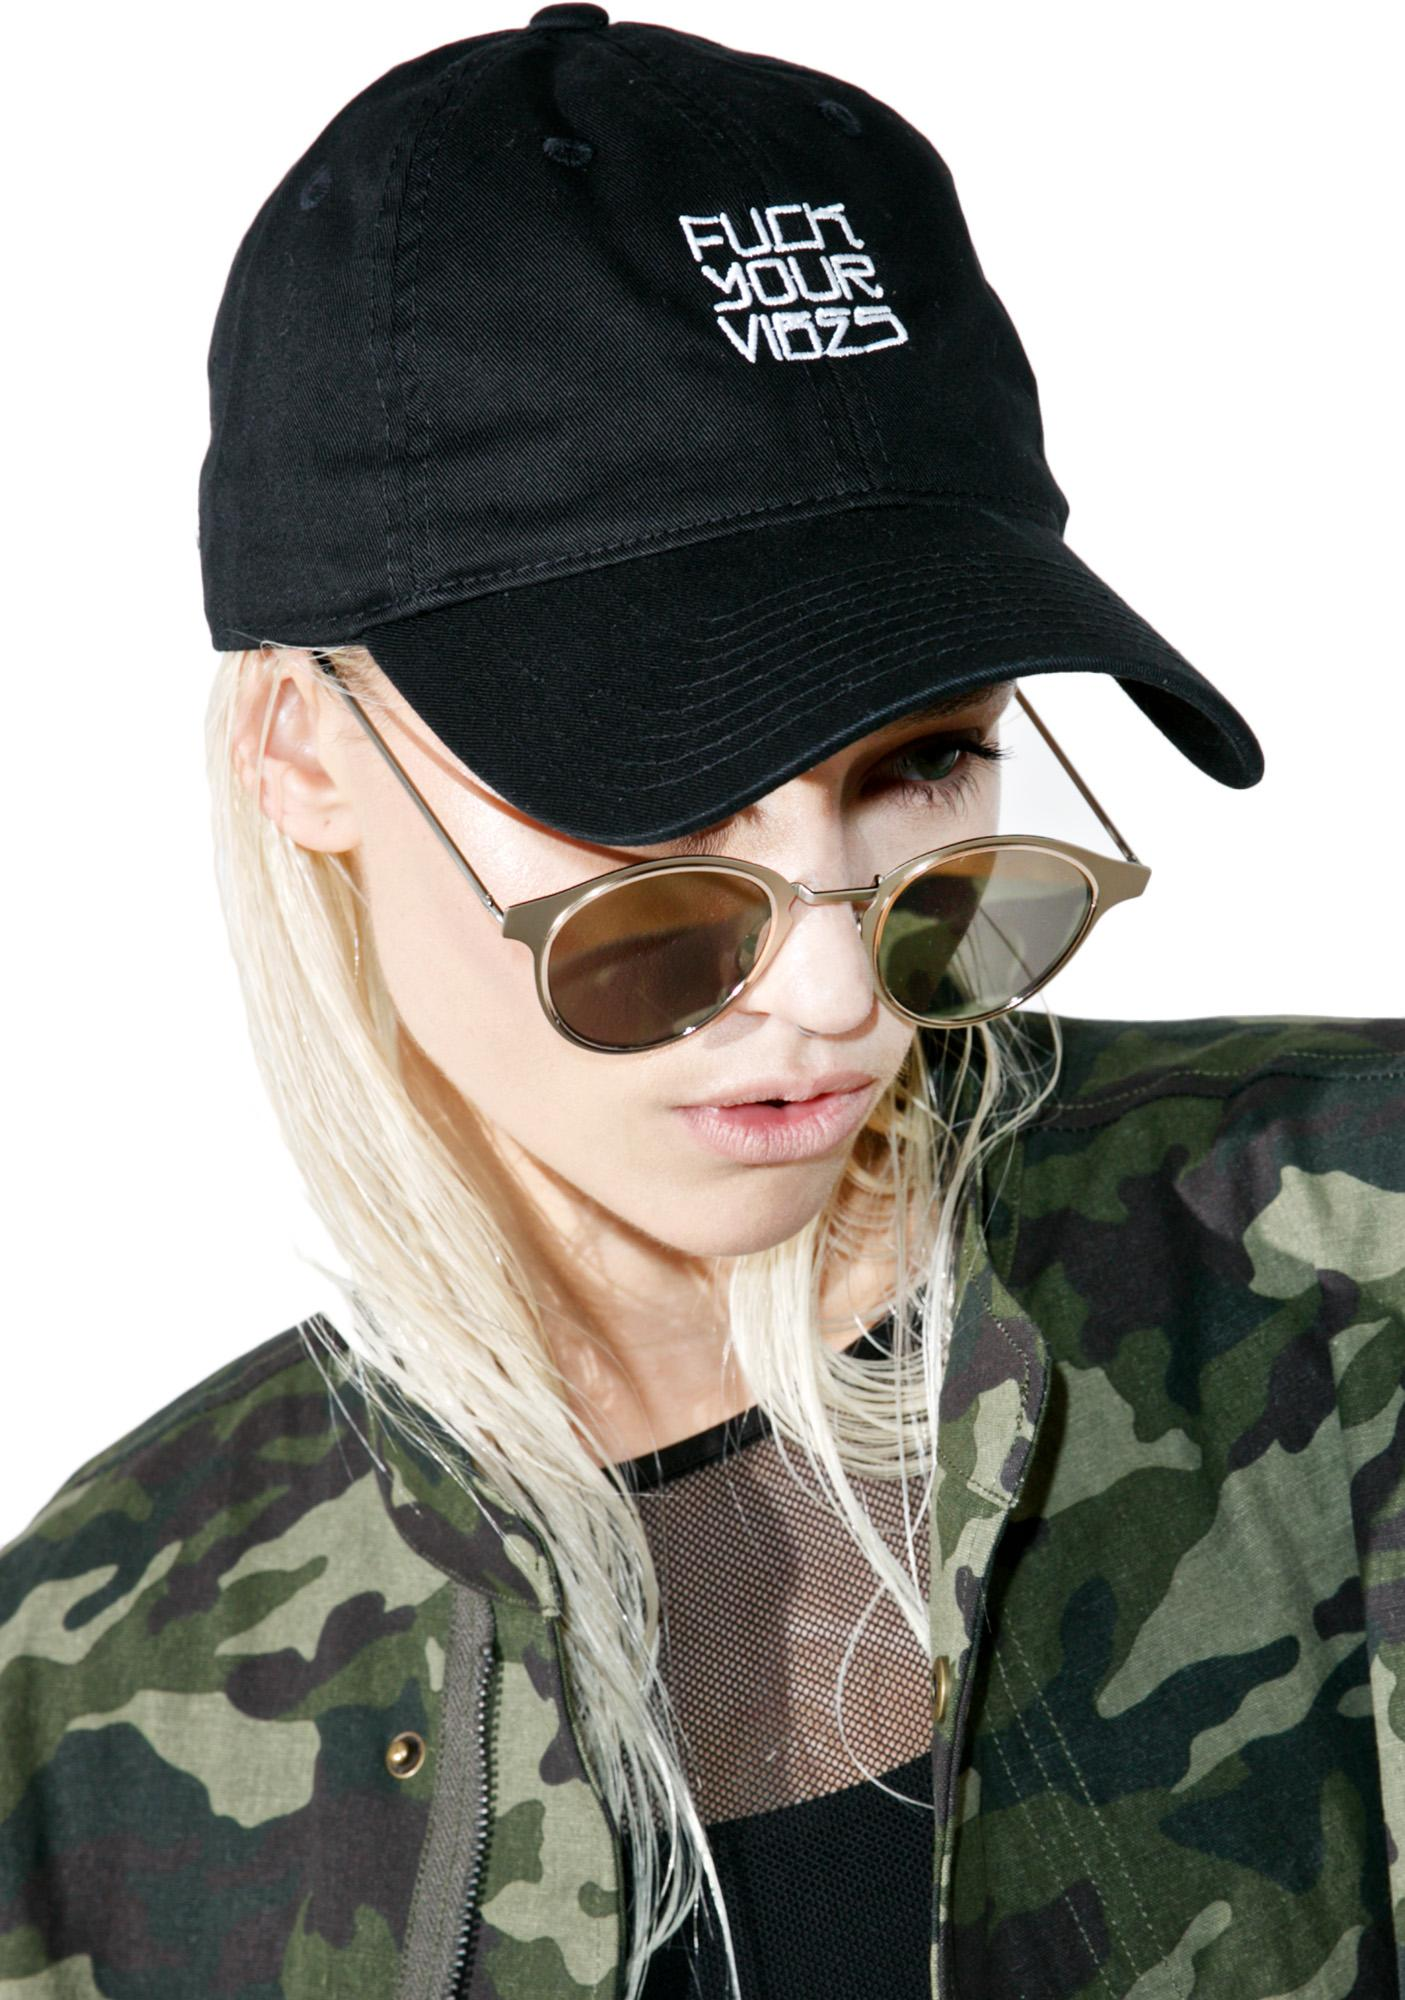 HLZBLZ Fuck Your Vibes Dad Hat